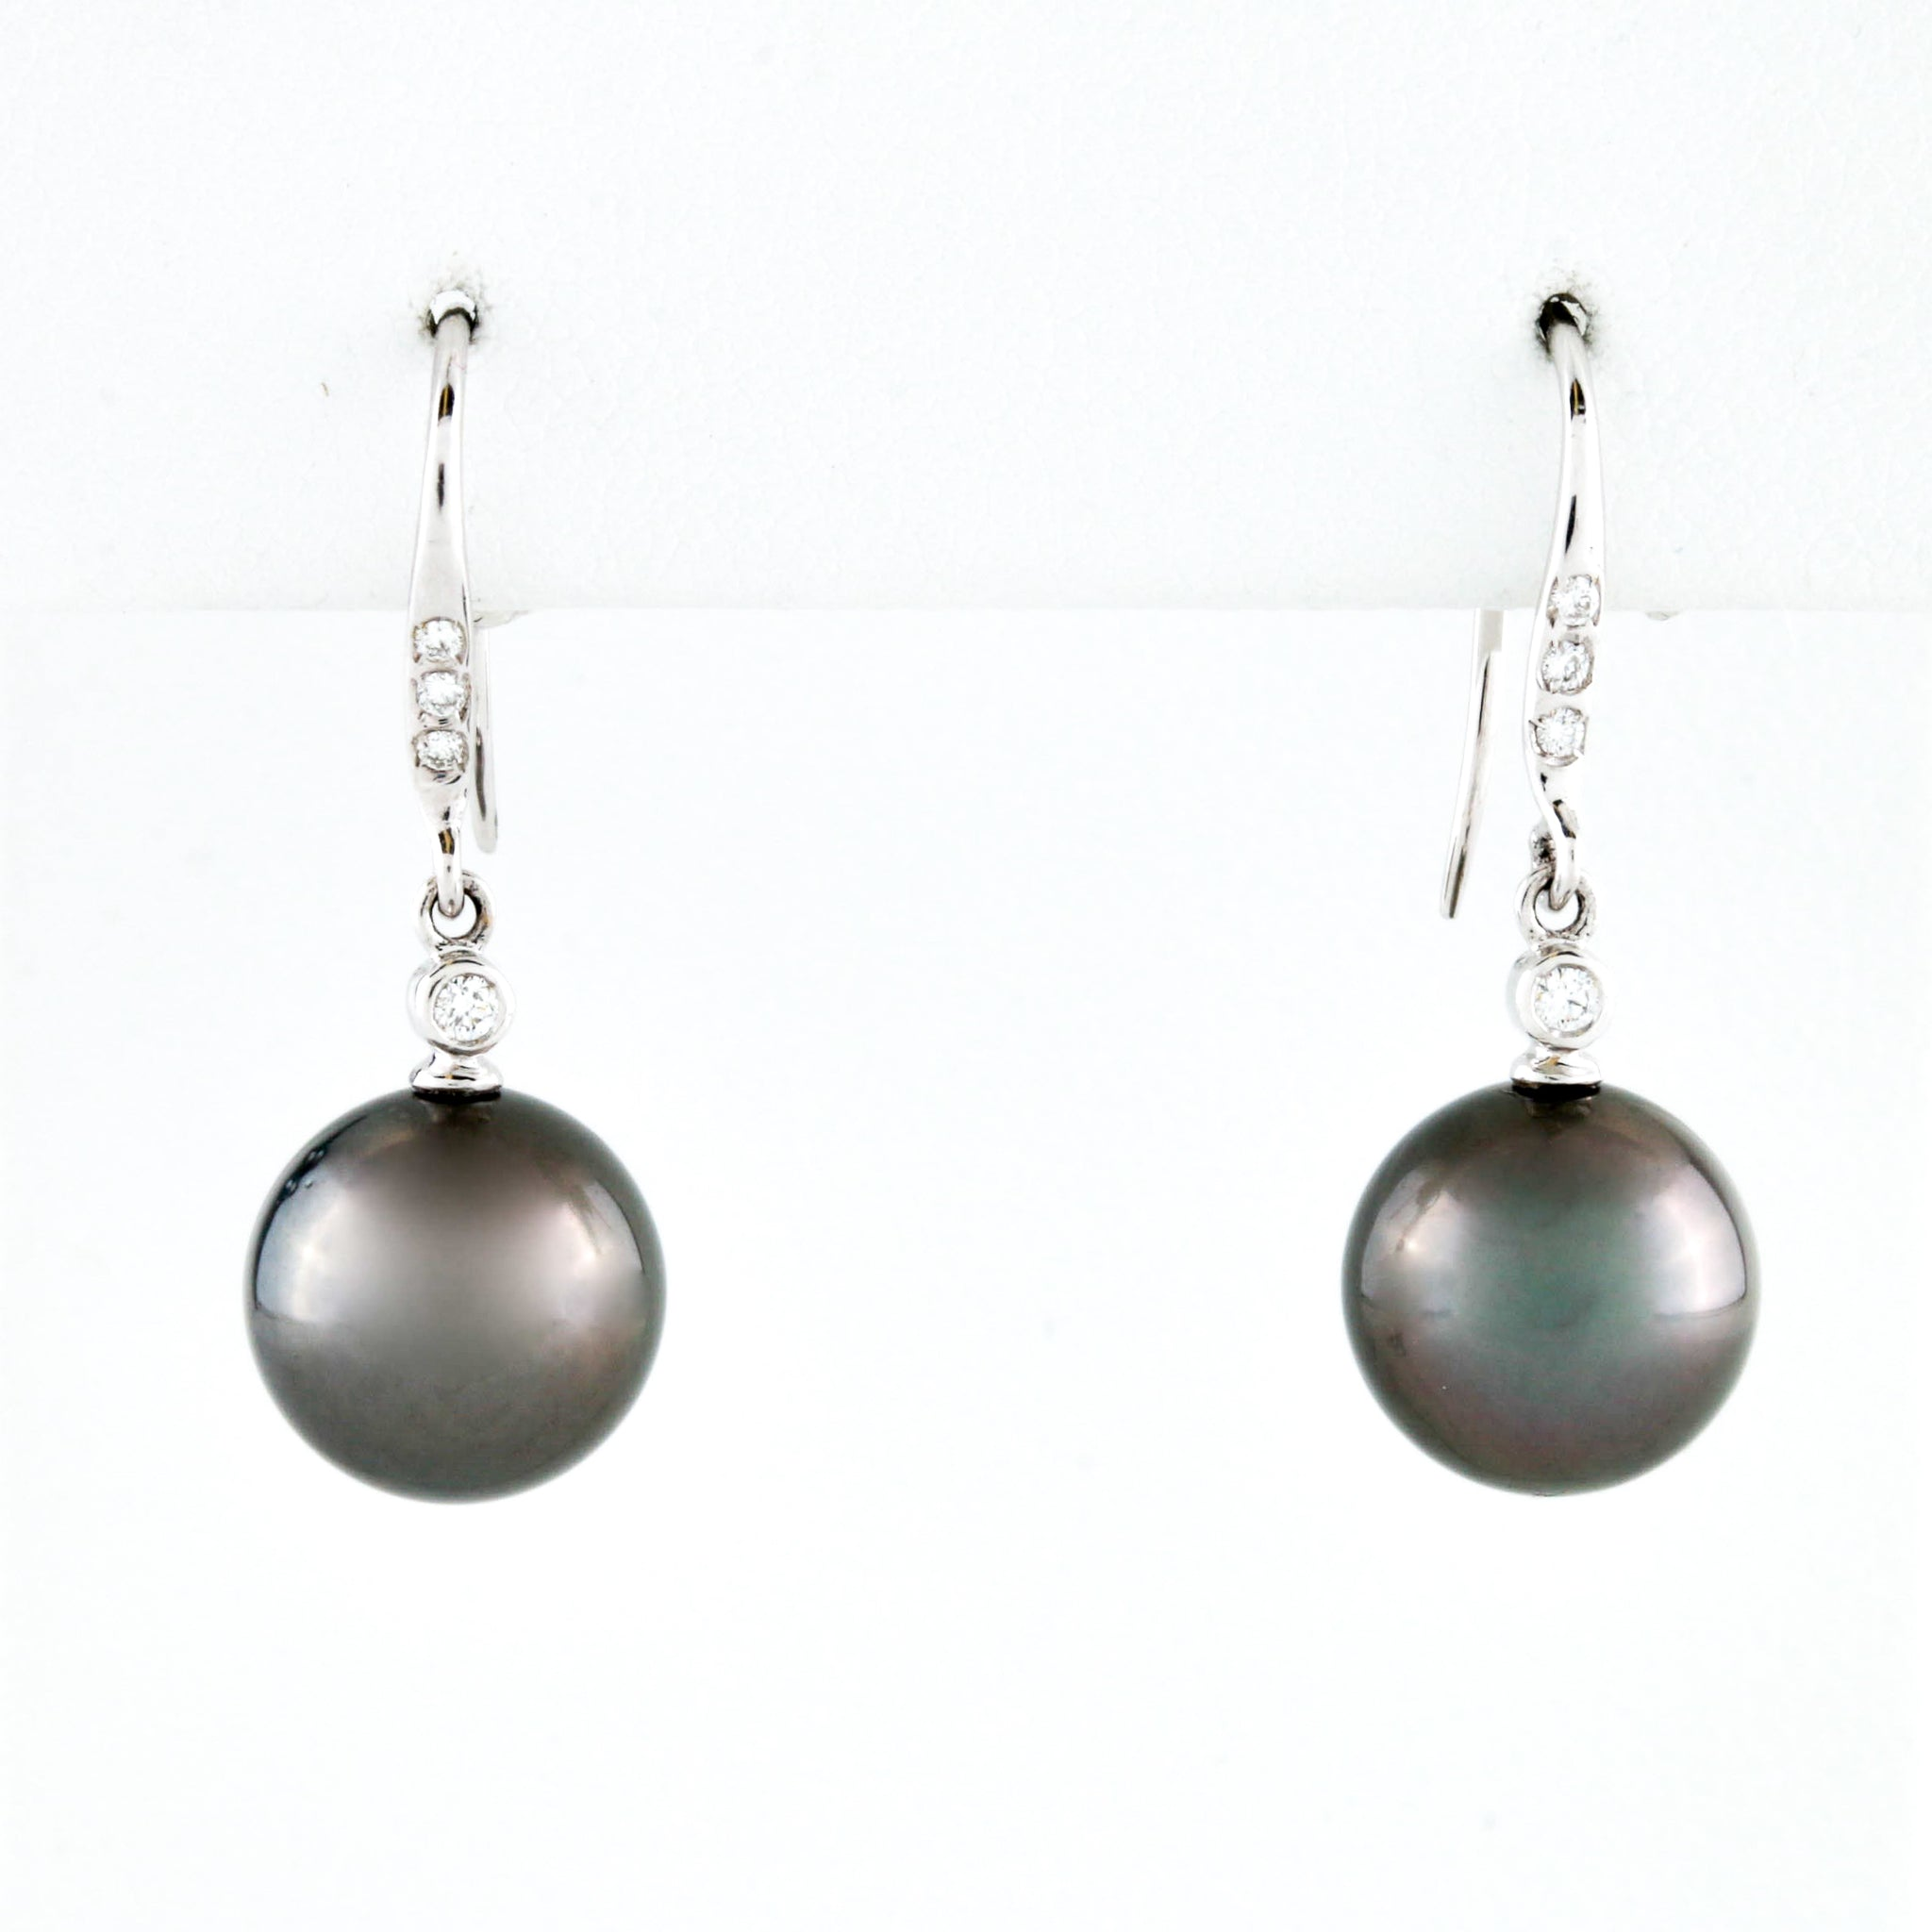 South Sea Pearl Drops with Diamond Accents in White Gold Earrings - Sindur